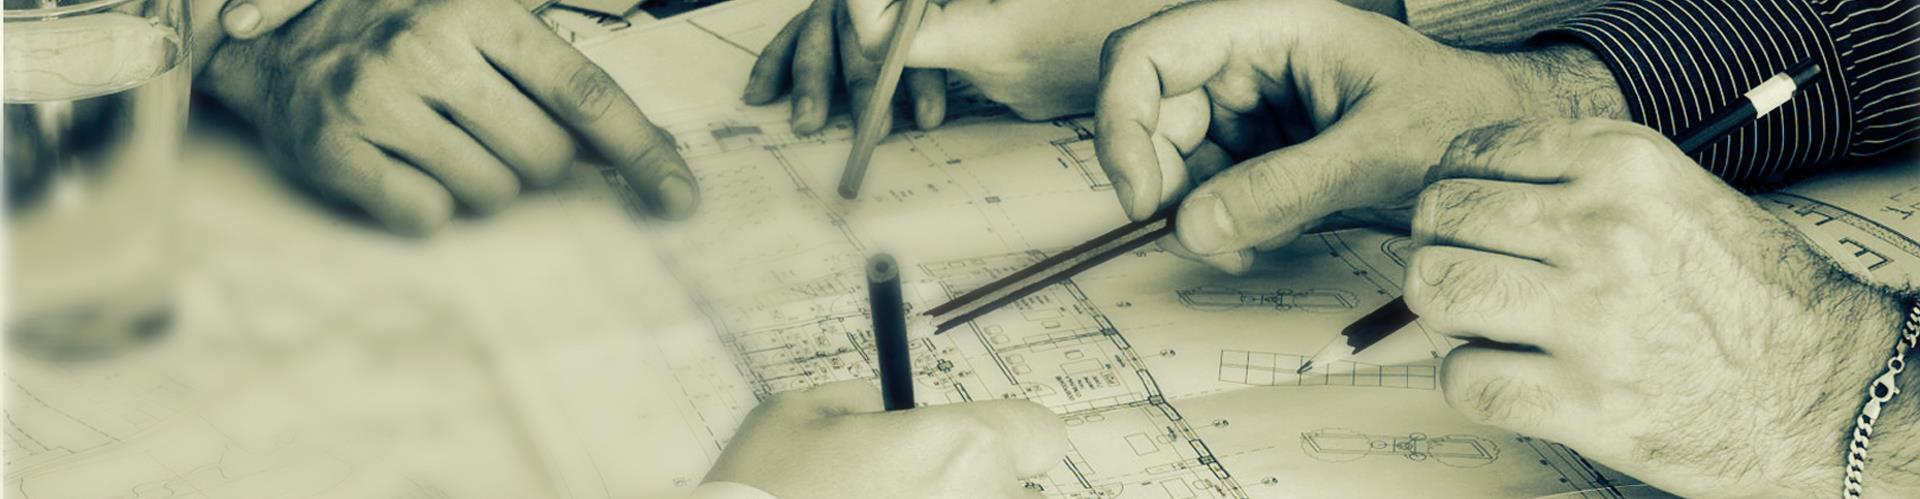 Infrastructure design and Facility planning